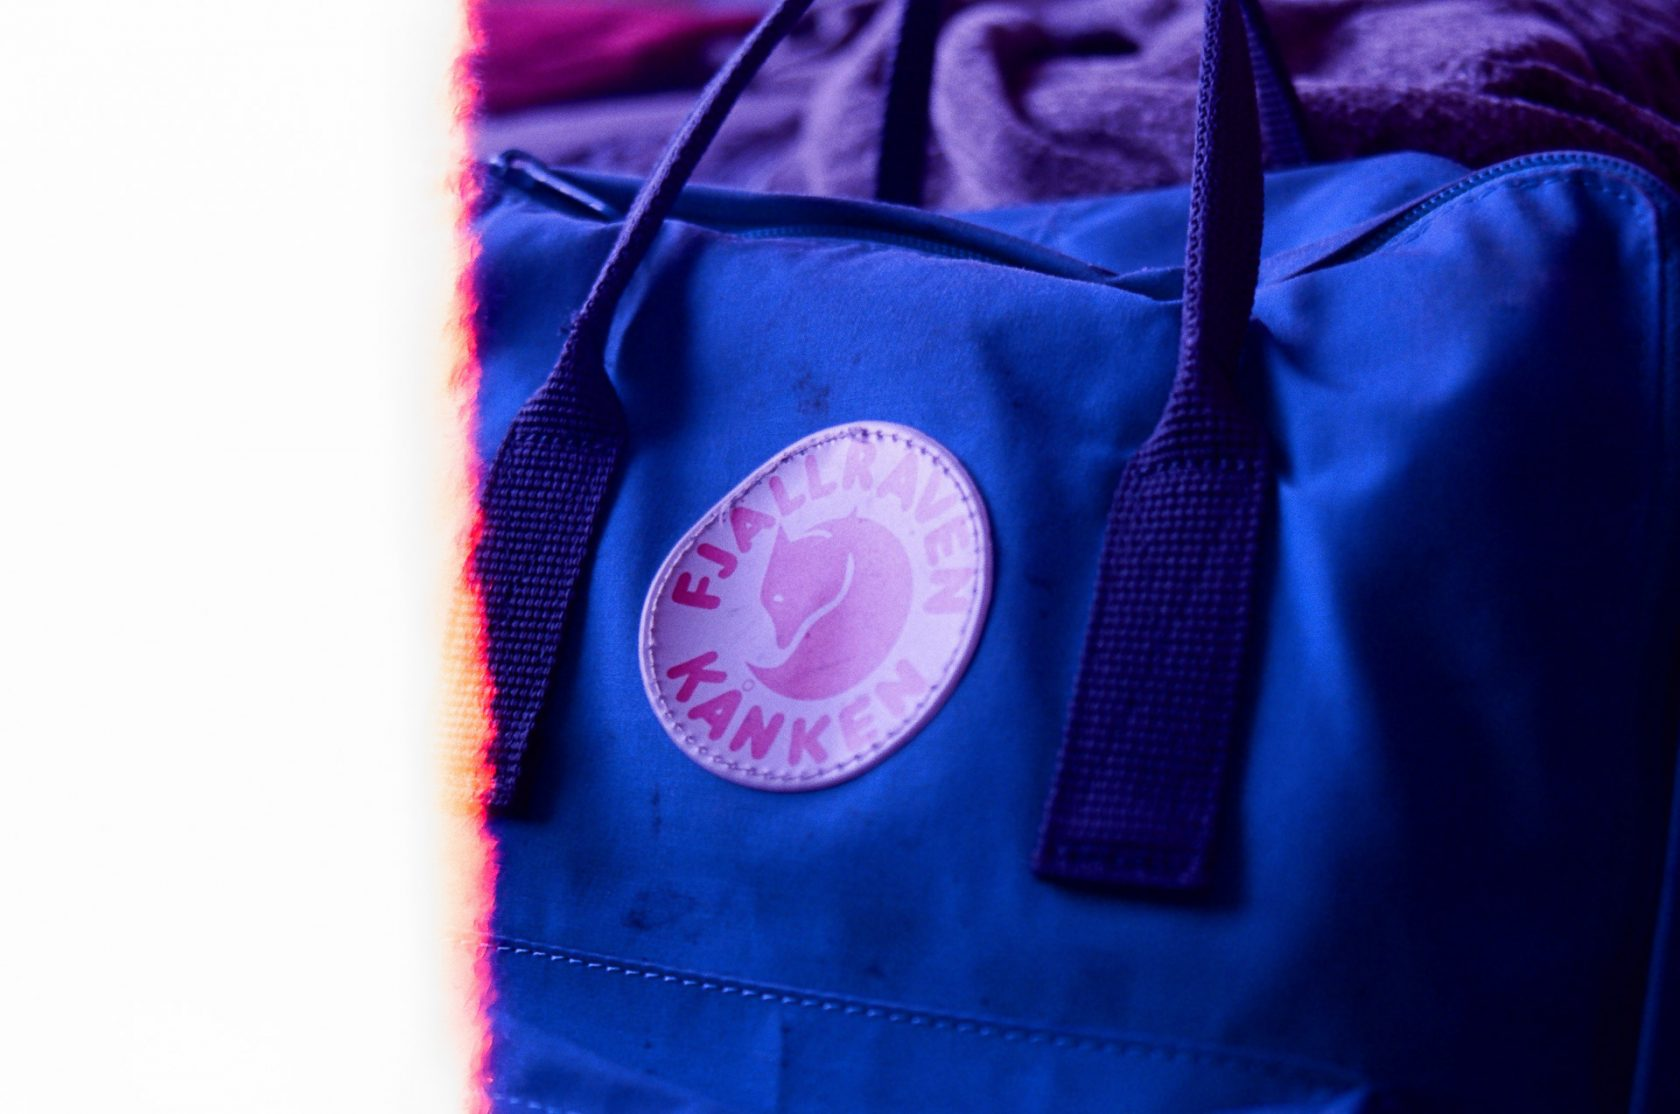 A close-up image of a Fjällräven Kånken backpack logo